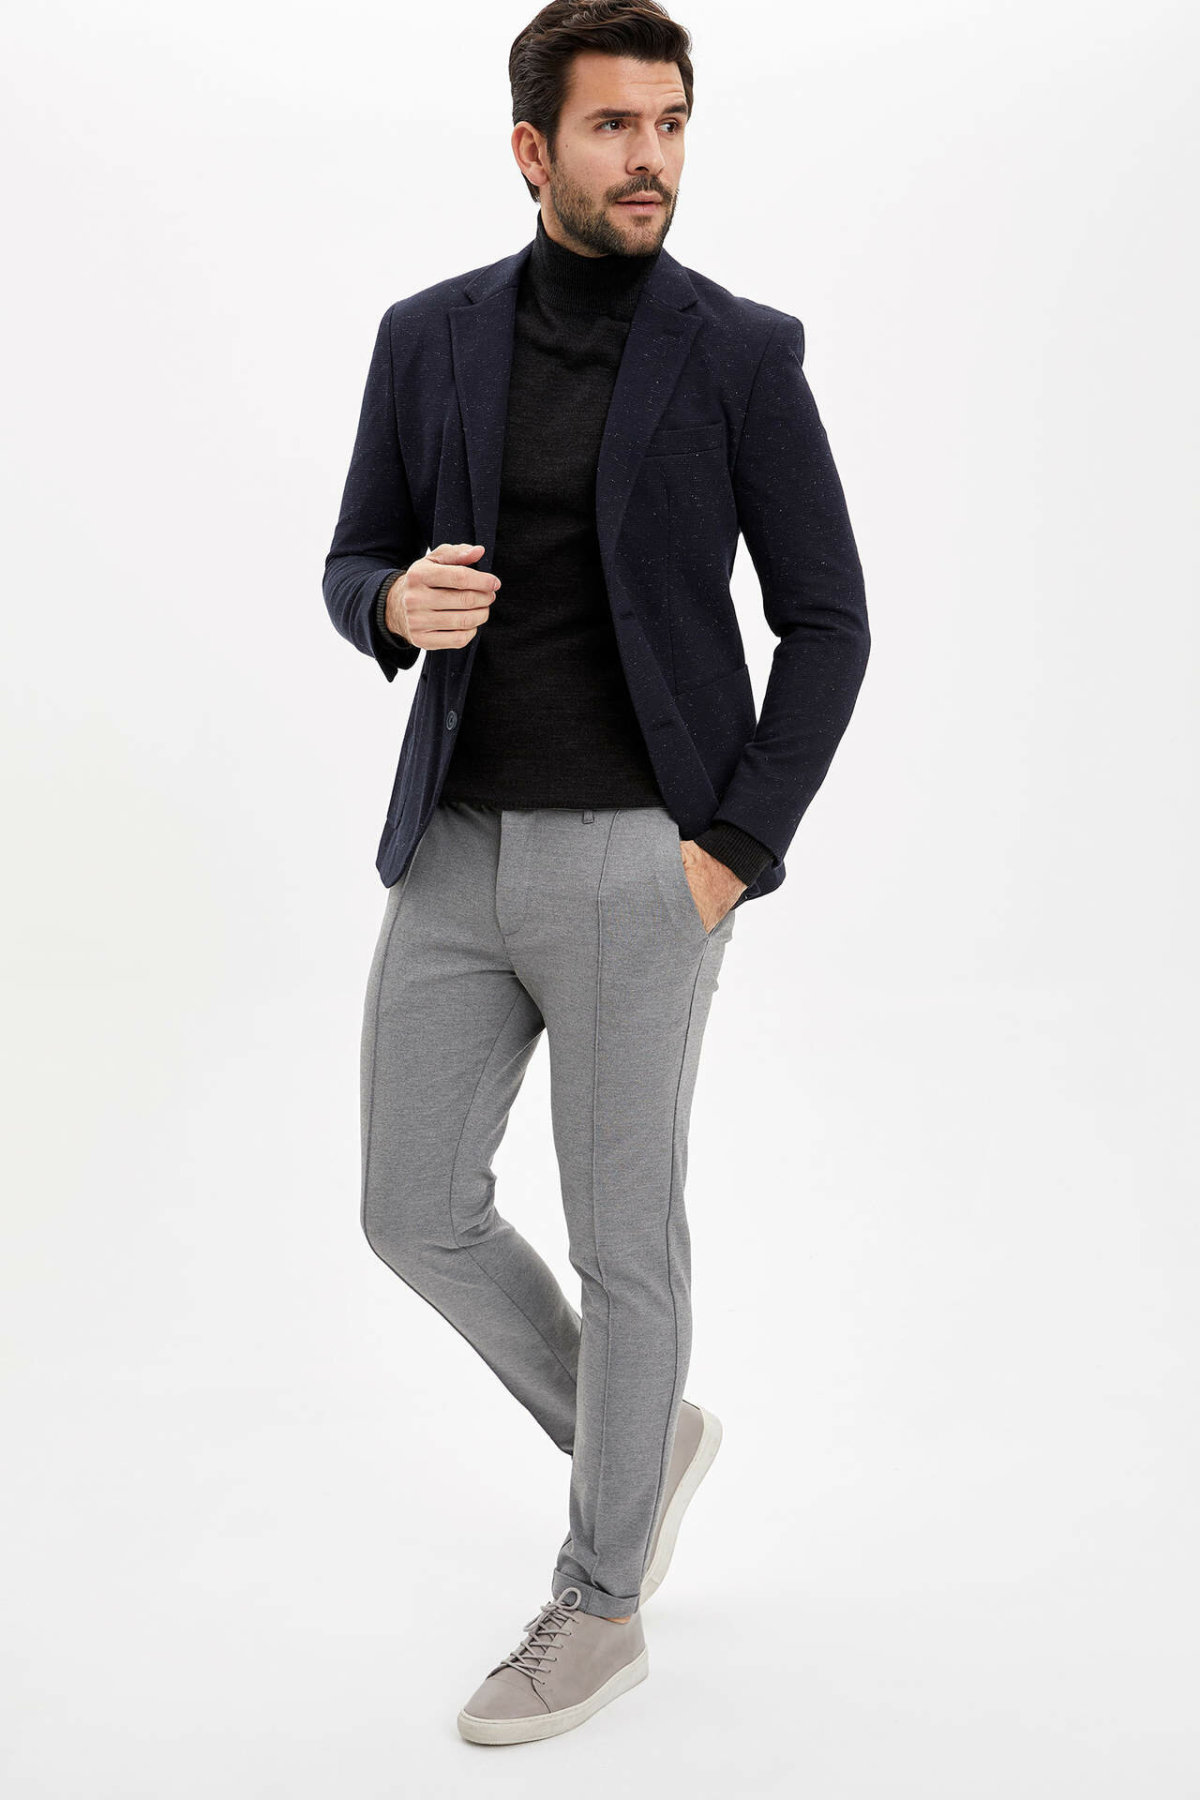 DeFacto Man's Casual Light Grey Long Pants Men's Smart Casual Bottoms Men's Mid-waist Trousers-M7856AZ20SP